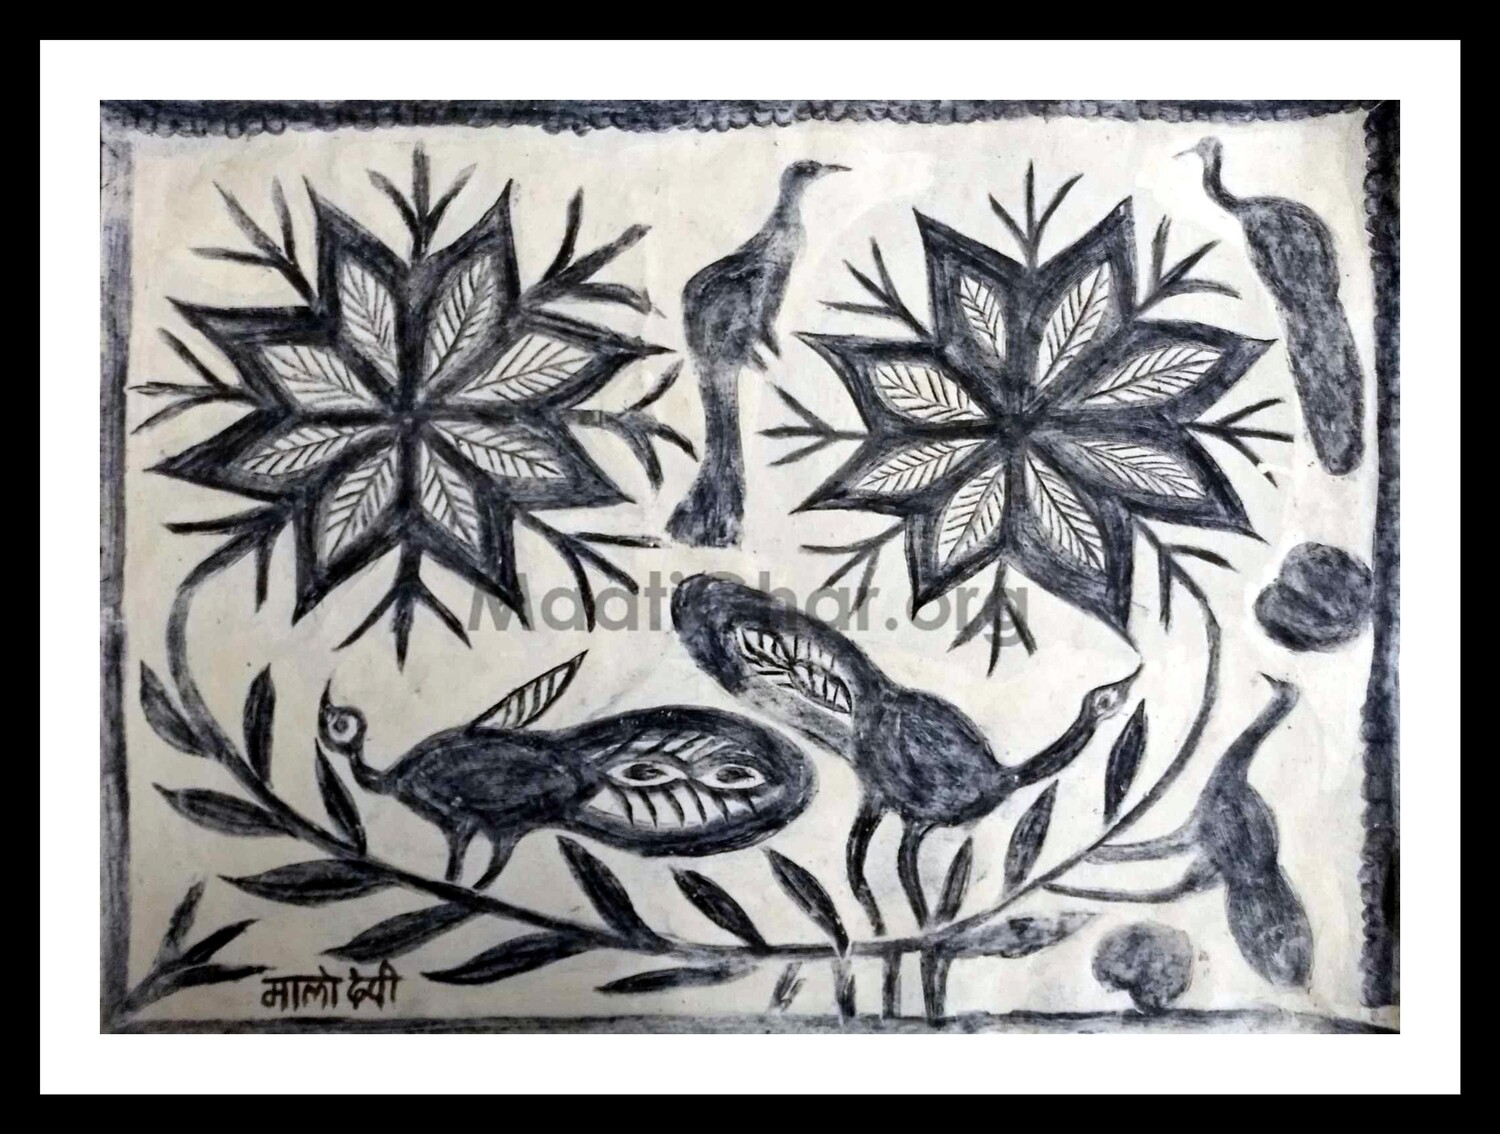 Khovar Painting - Peacocks and Flowers (30x22 in)